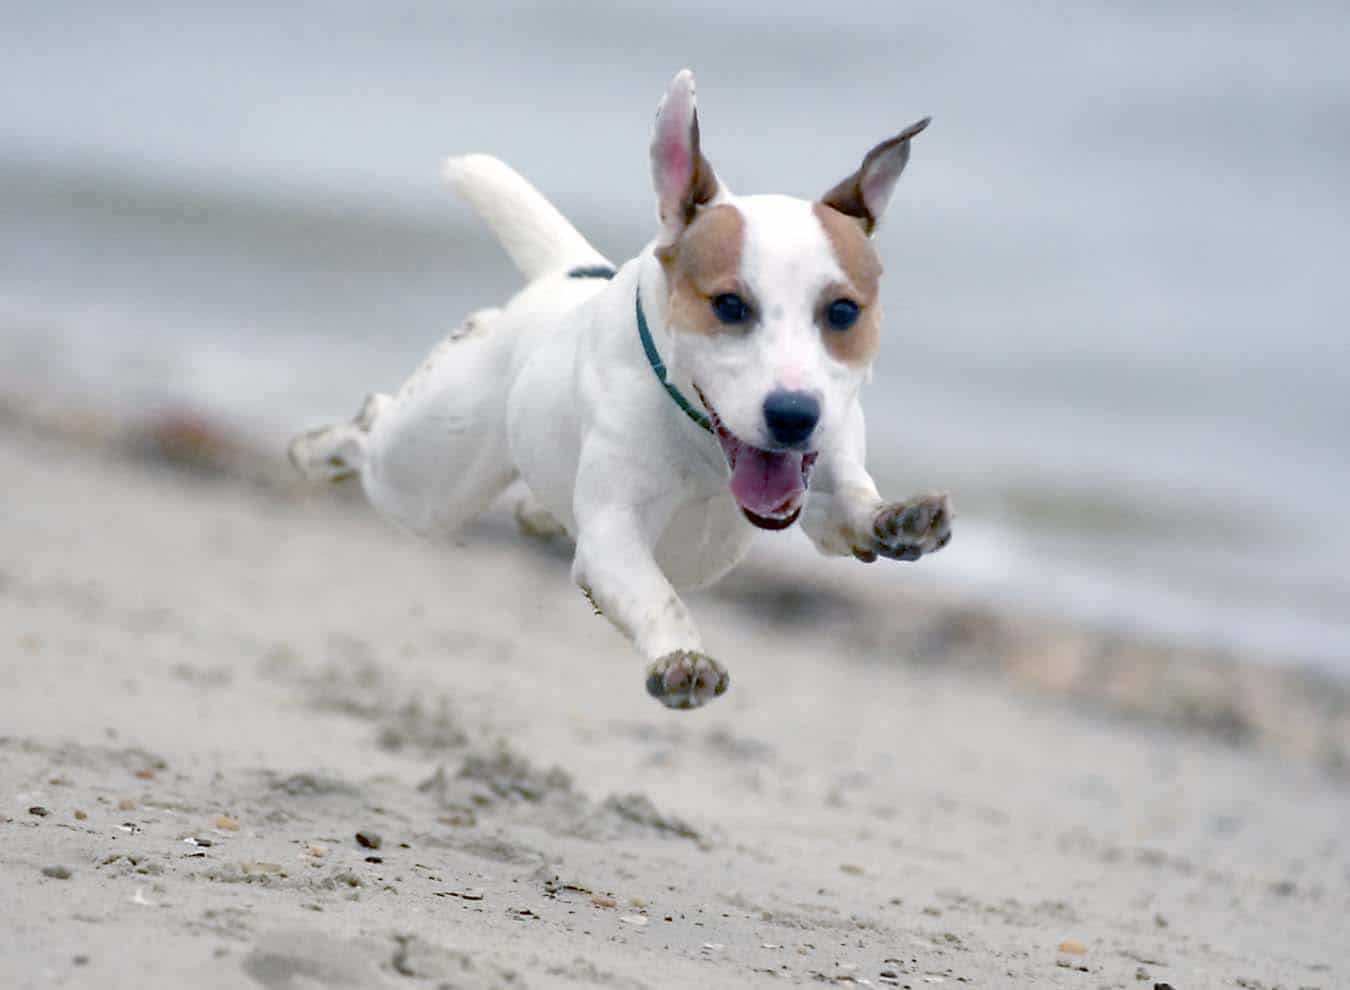 jack russell terrier mid air on a beach